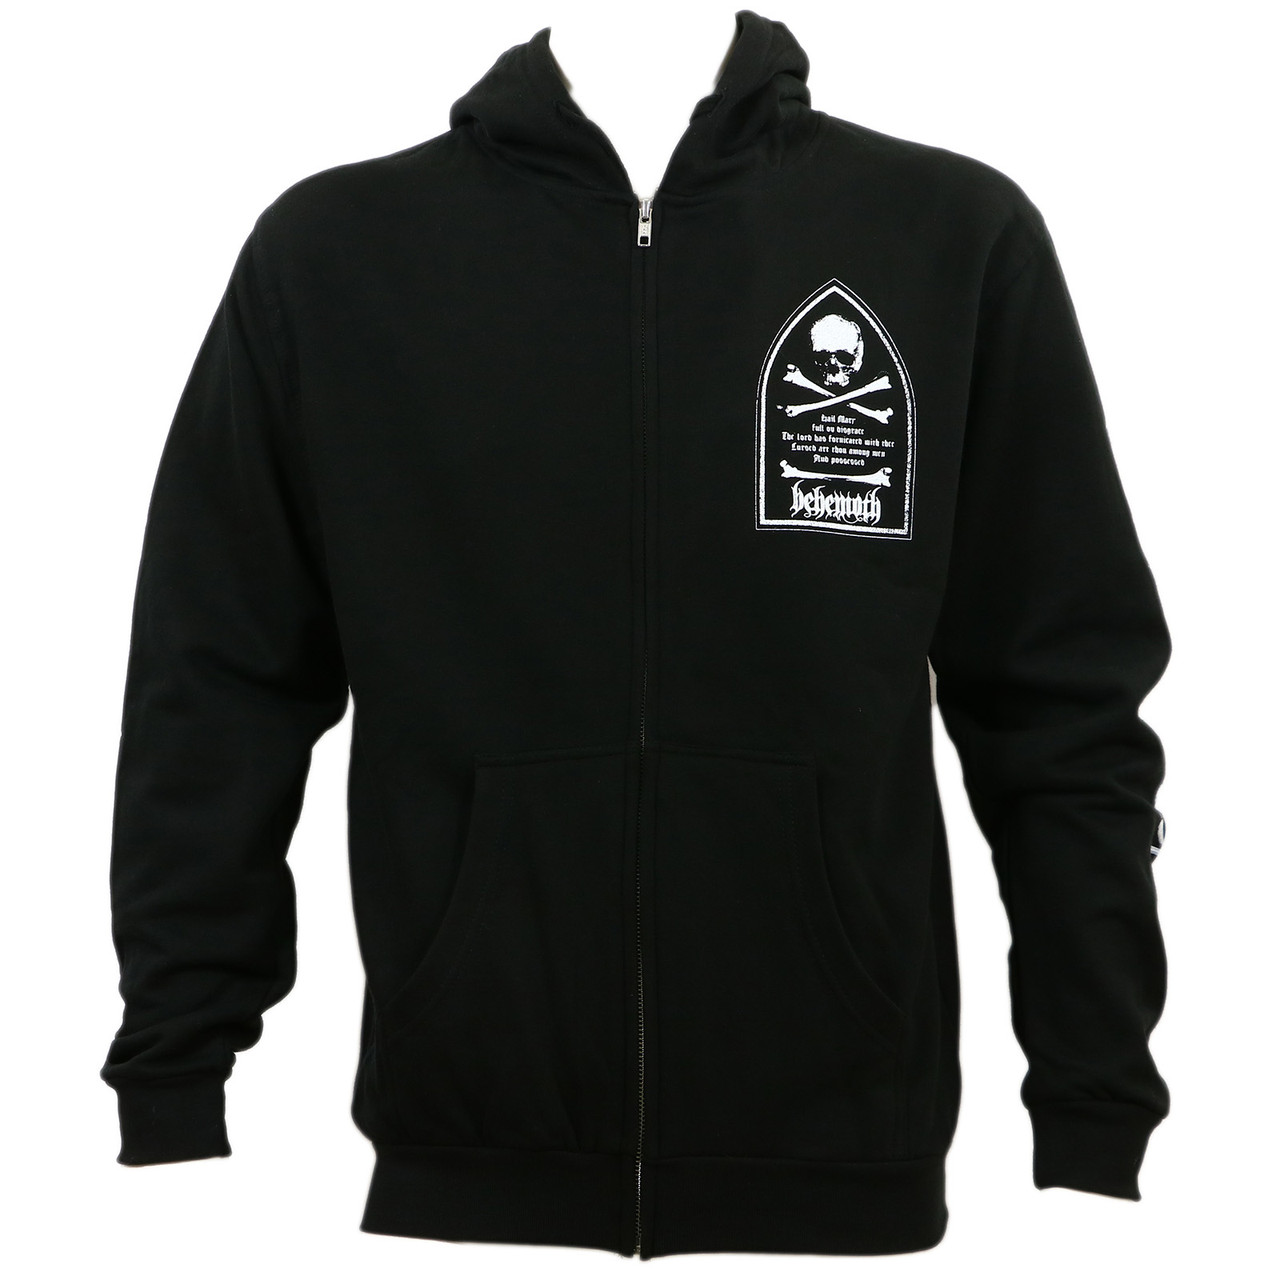 https://d3d71ba2asa5oz.cloudfront.net/12013655/images/10087316%20behemoth%20amen%20zip%20up%20hoodie%20(3).jpg